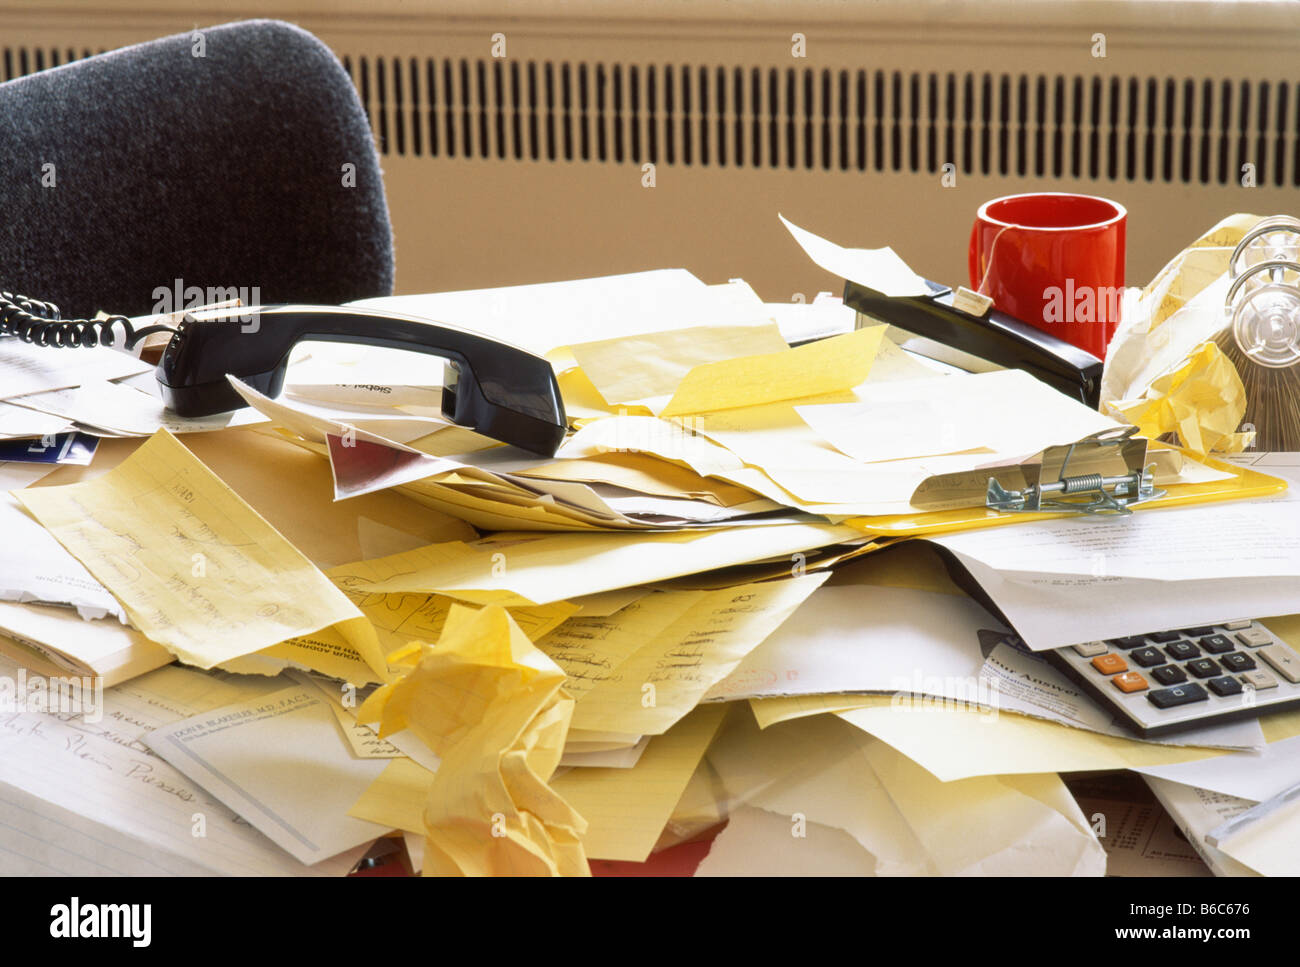 Messy Desk with Landline Phone and Rolodex, USA - Stock Image